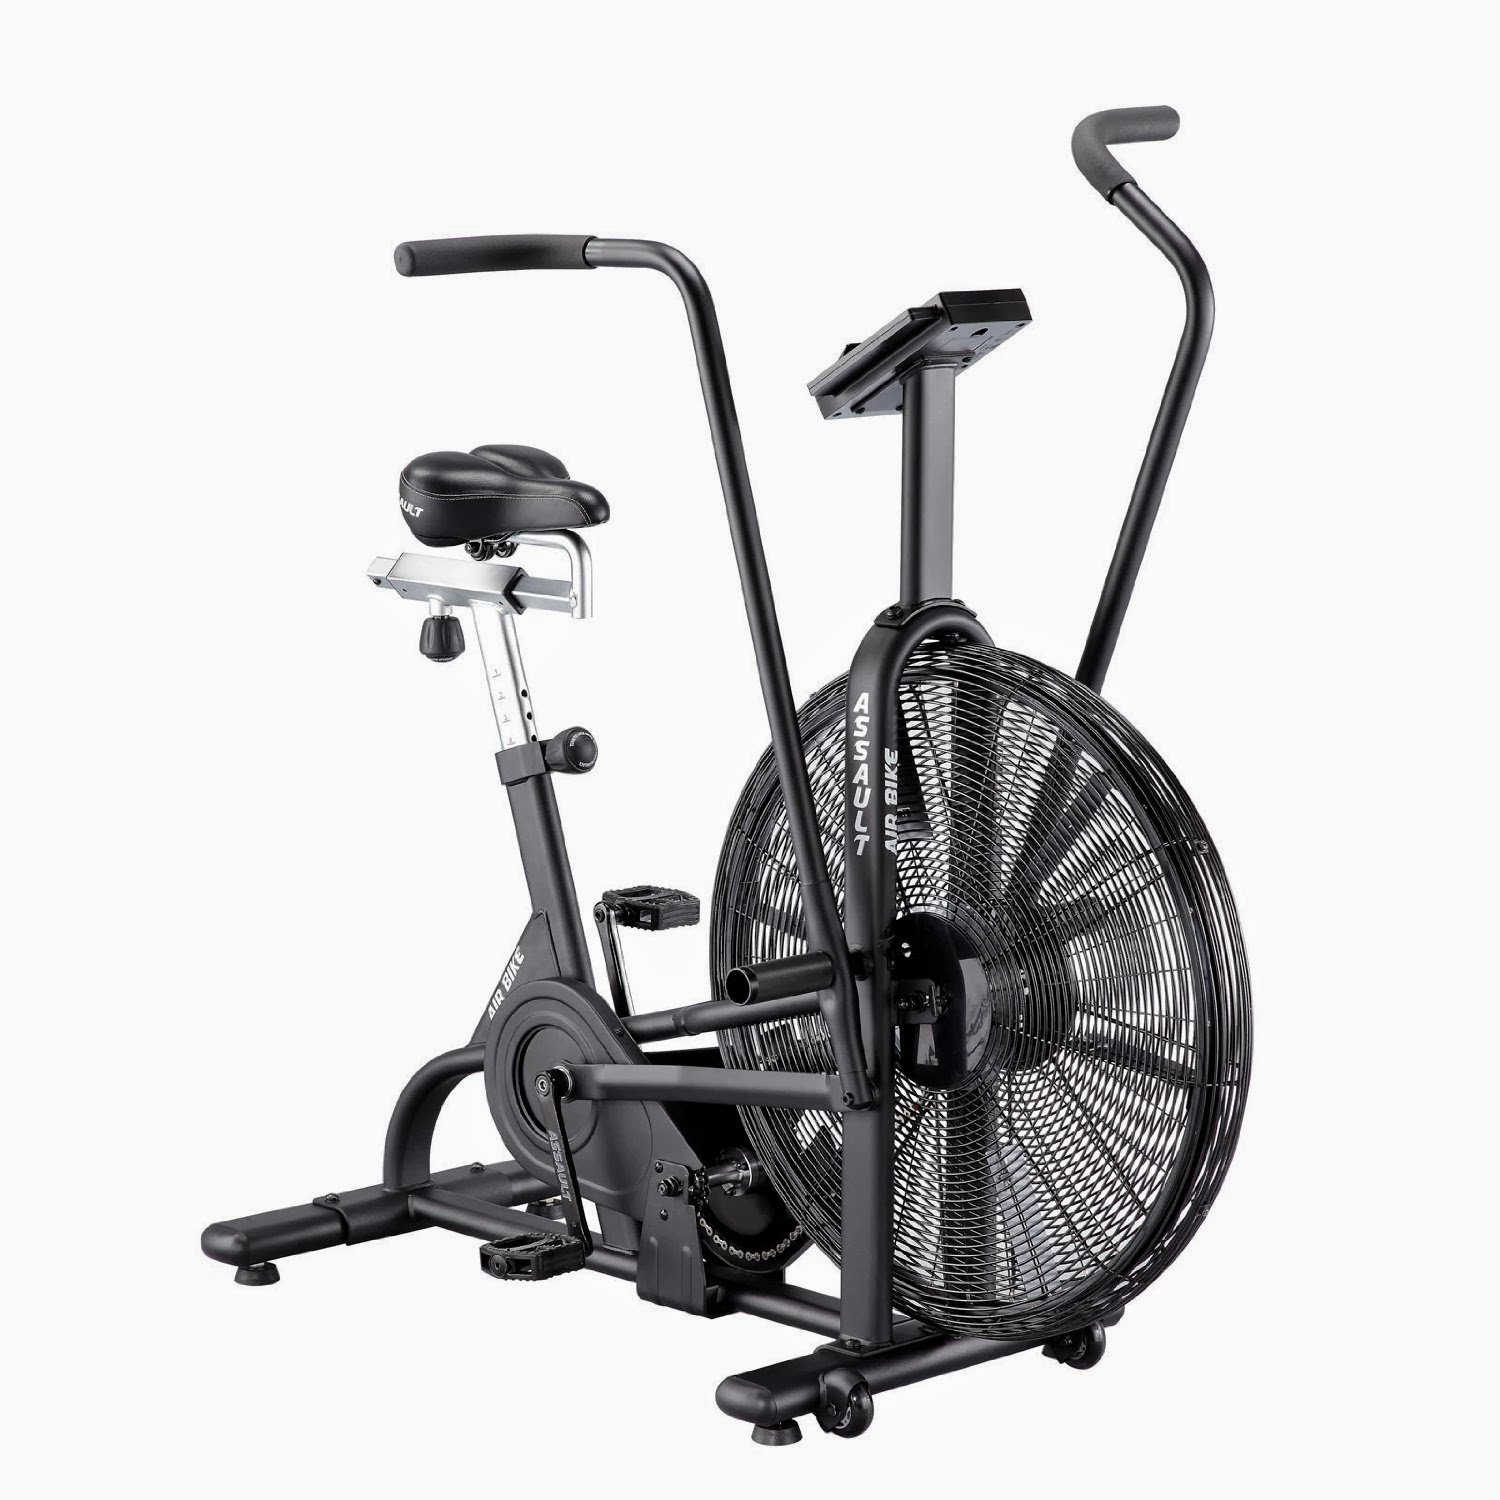 Lifecore Fitness Assault Air Bike, picture, image, review features & specifications